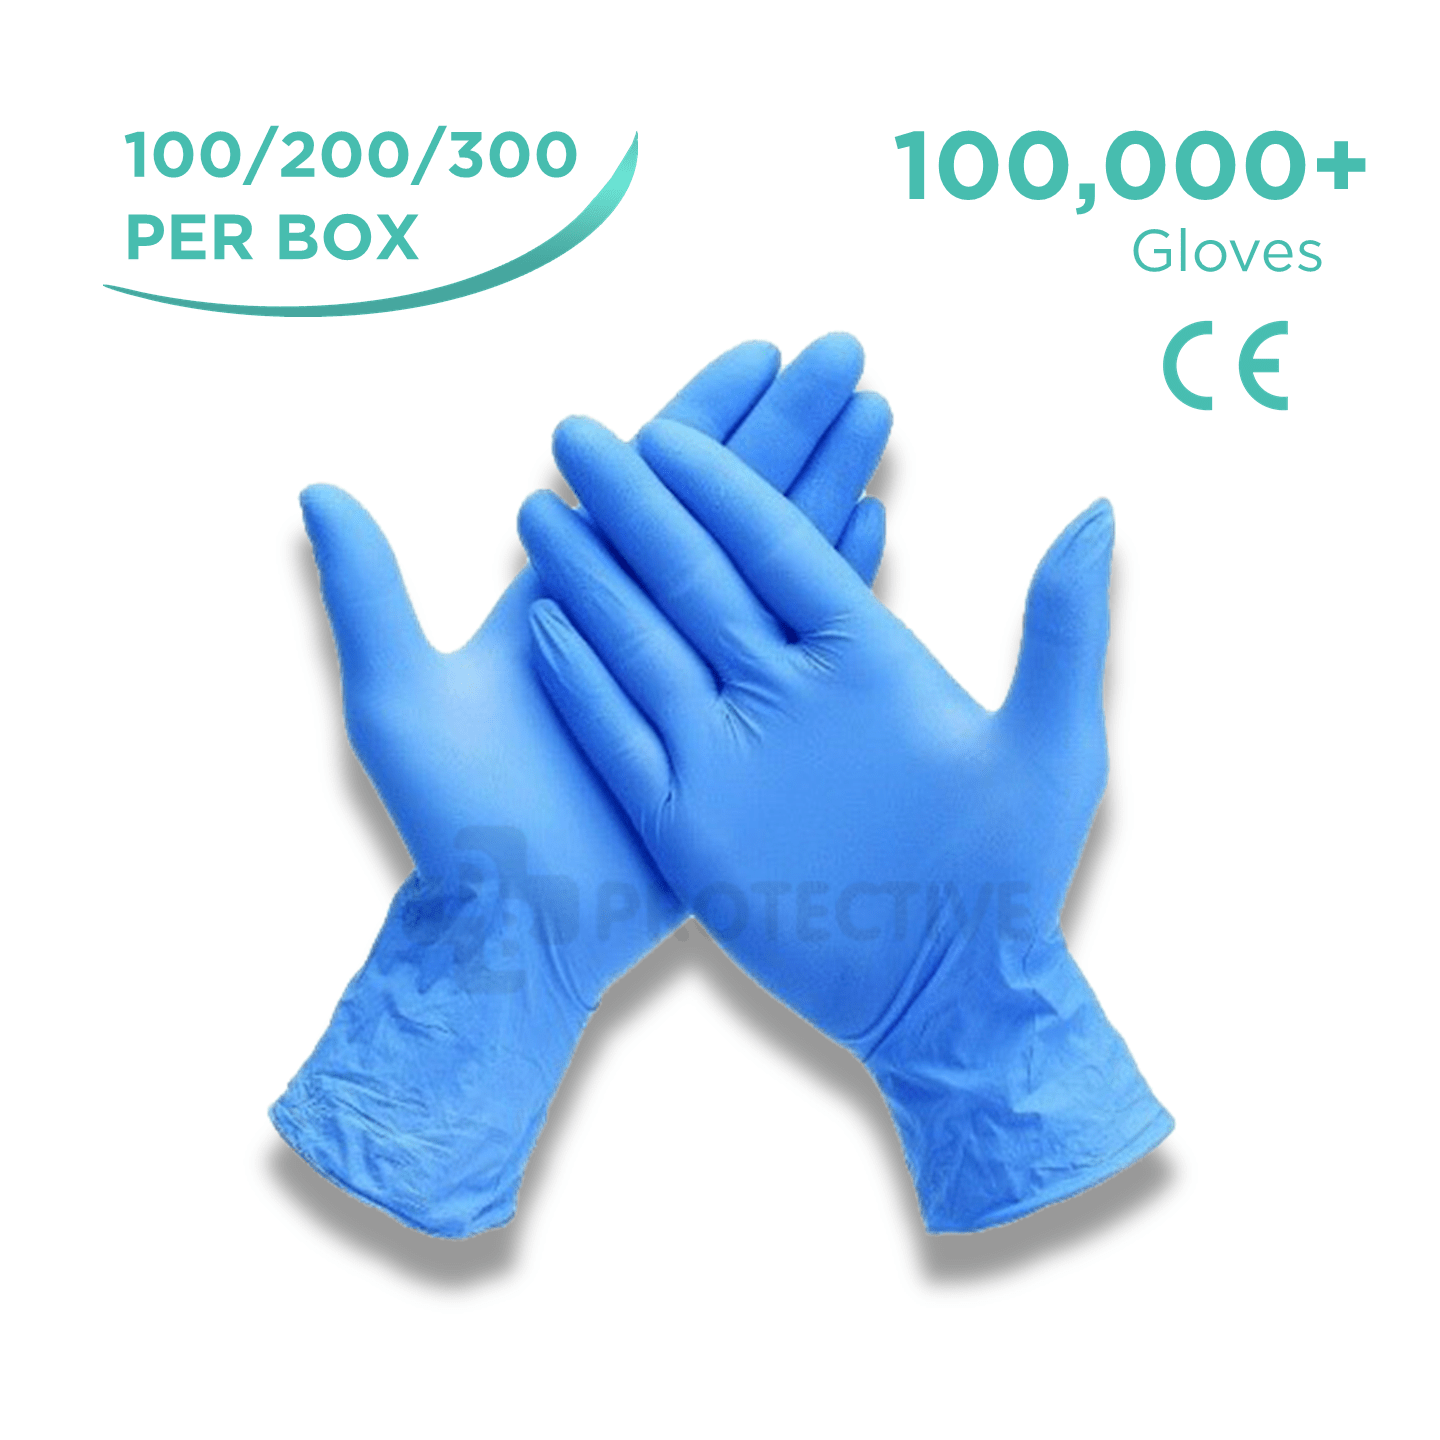 Blue Nitrile Examination Gloves - Pack of 100,000 - USA Medical Supply - DB Protective